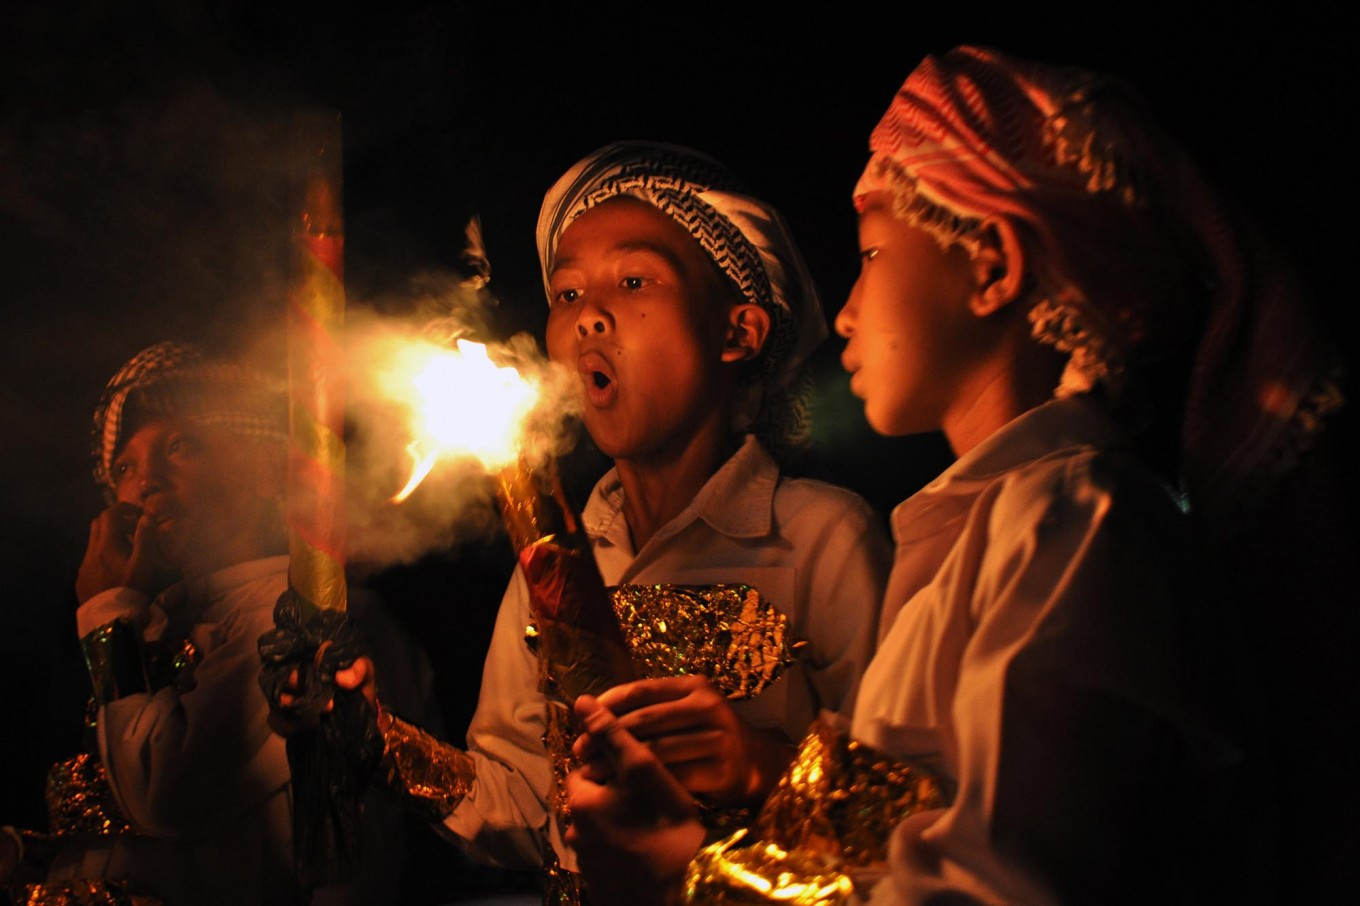 A boy blows out a torch at the close of a takbir torch parade at Makmur Mosque in Basin, Kebonarum, Klaten, Central Java, on Saturday, June 24, 2017. JP/ Magnus Hendratmo